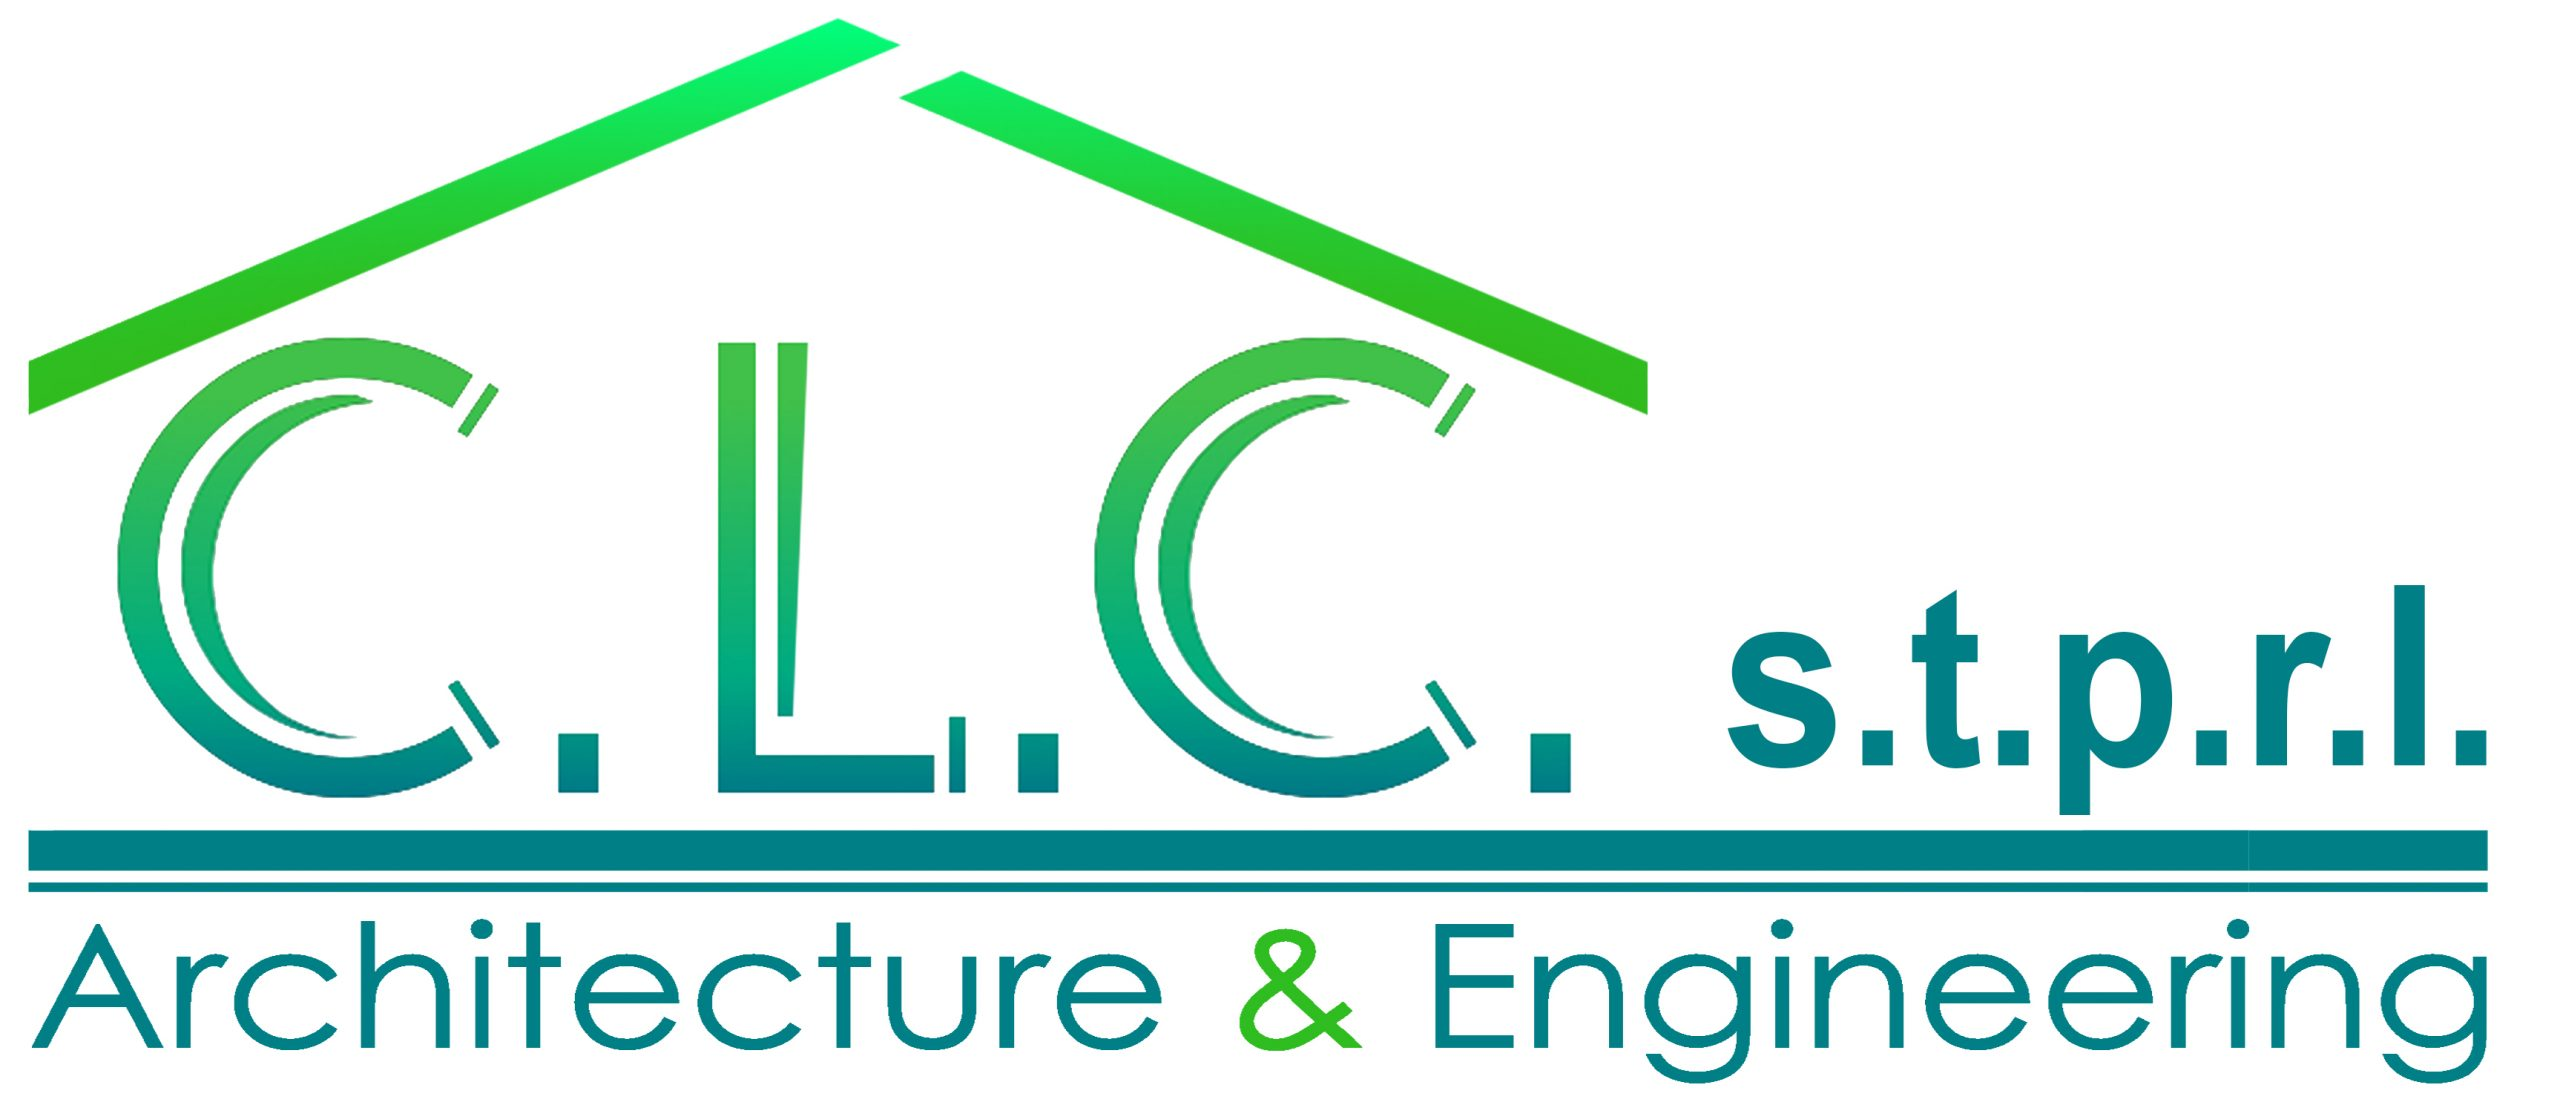 CLC ARCHITECTURE & ENGINEERING S.T.P.R.L.